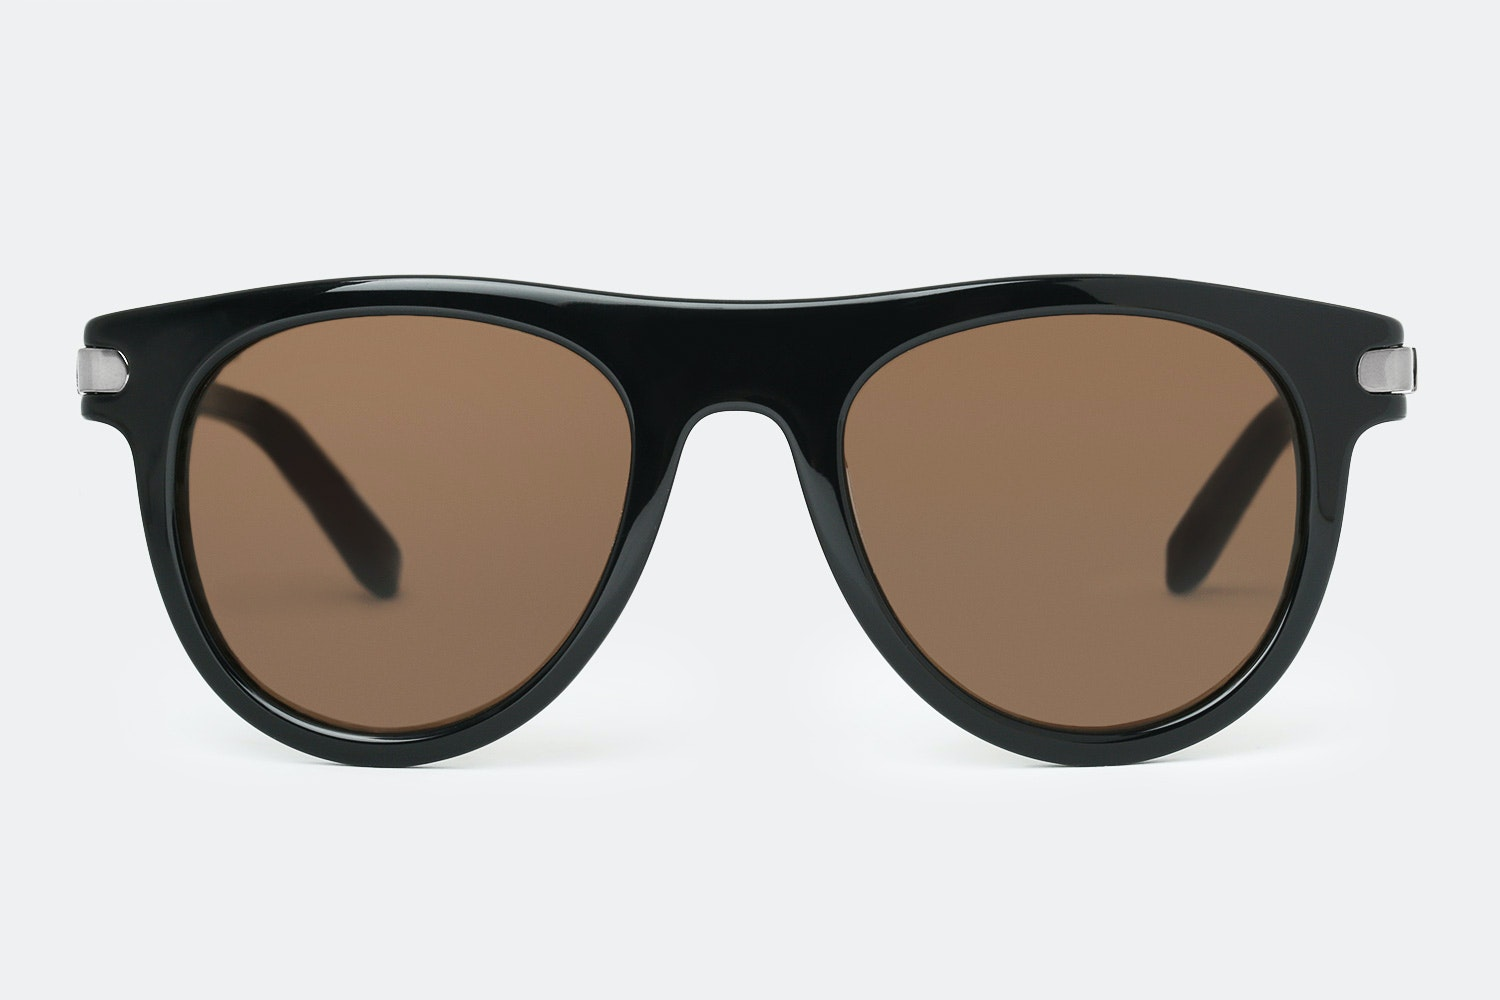 Shiny black frame with brown lenses